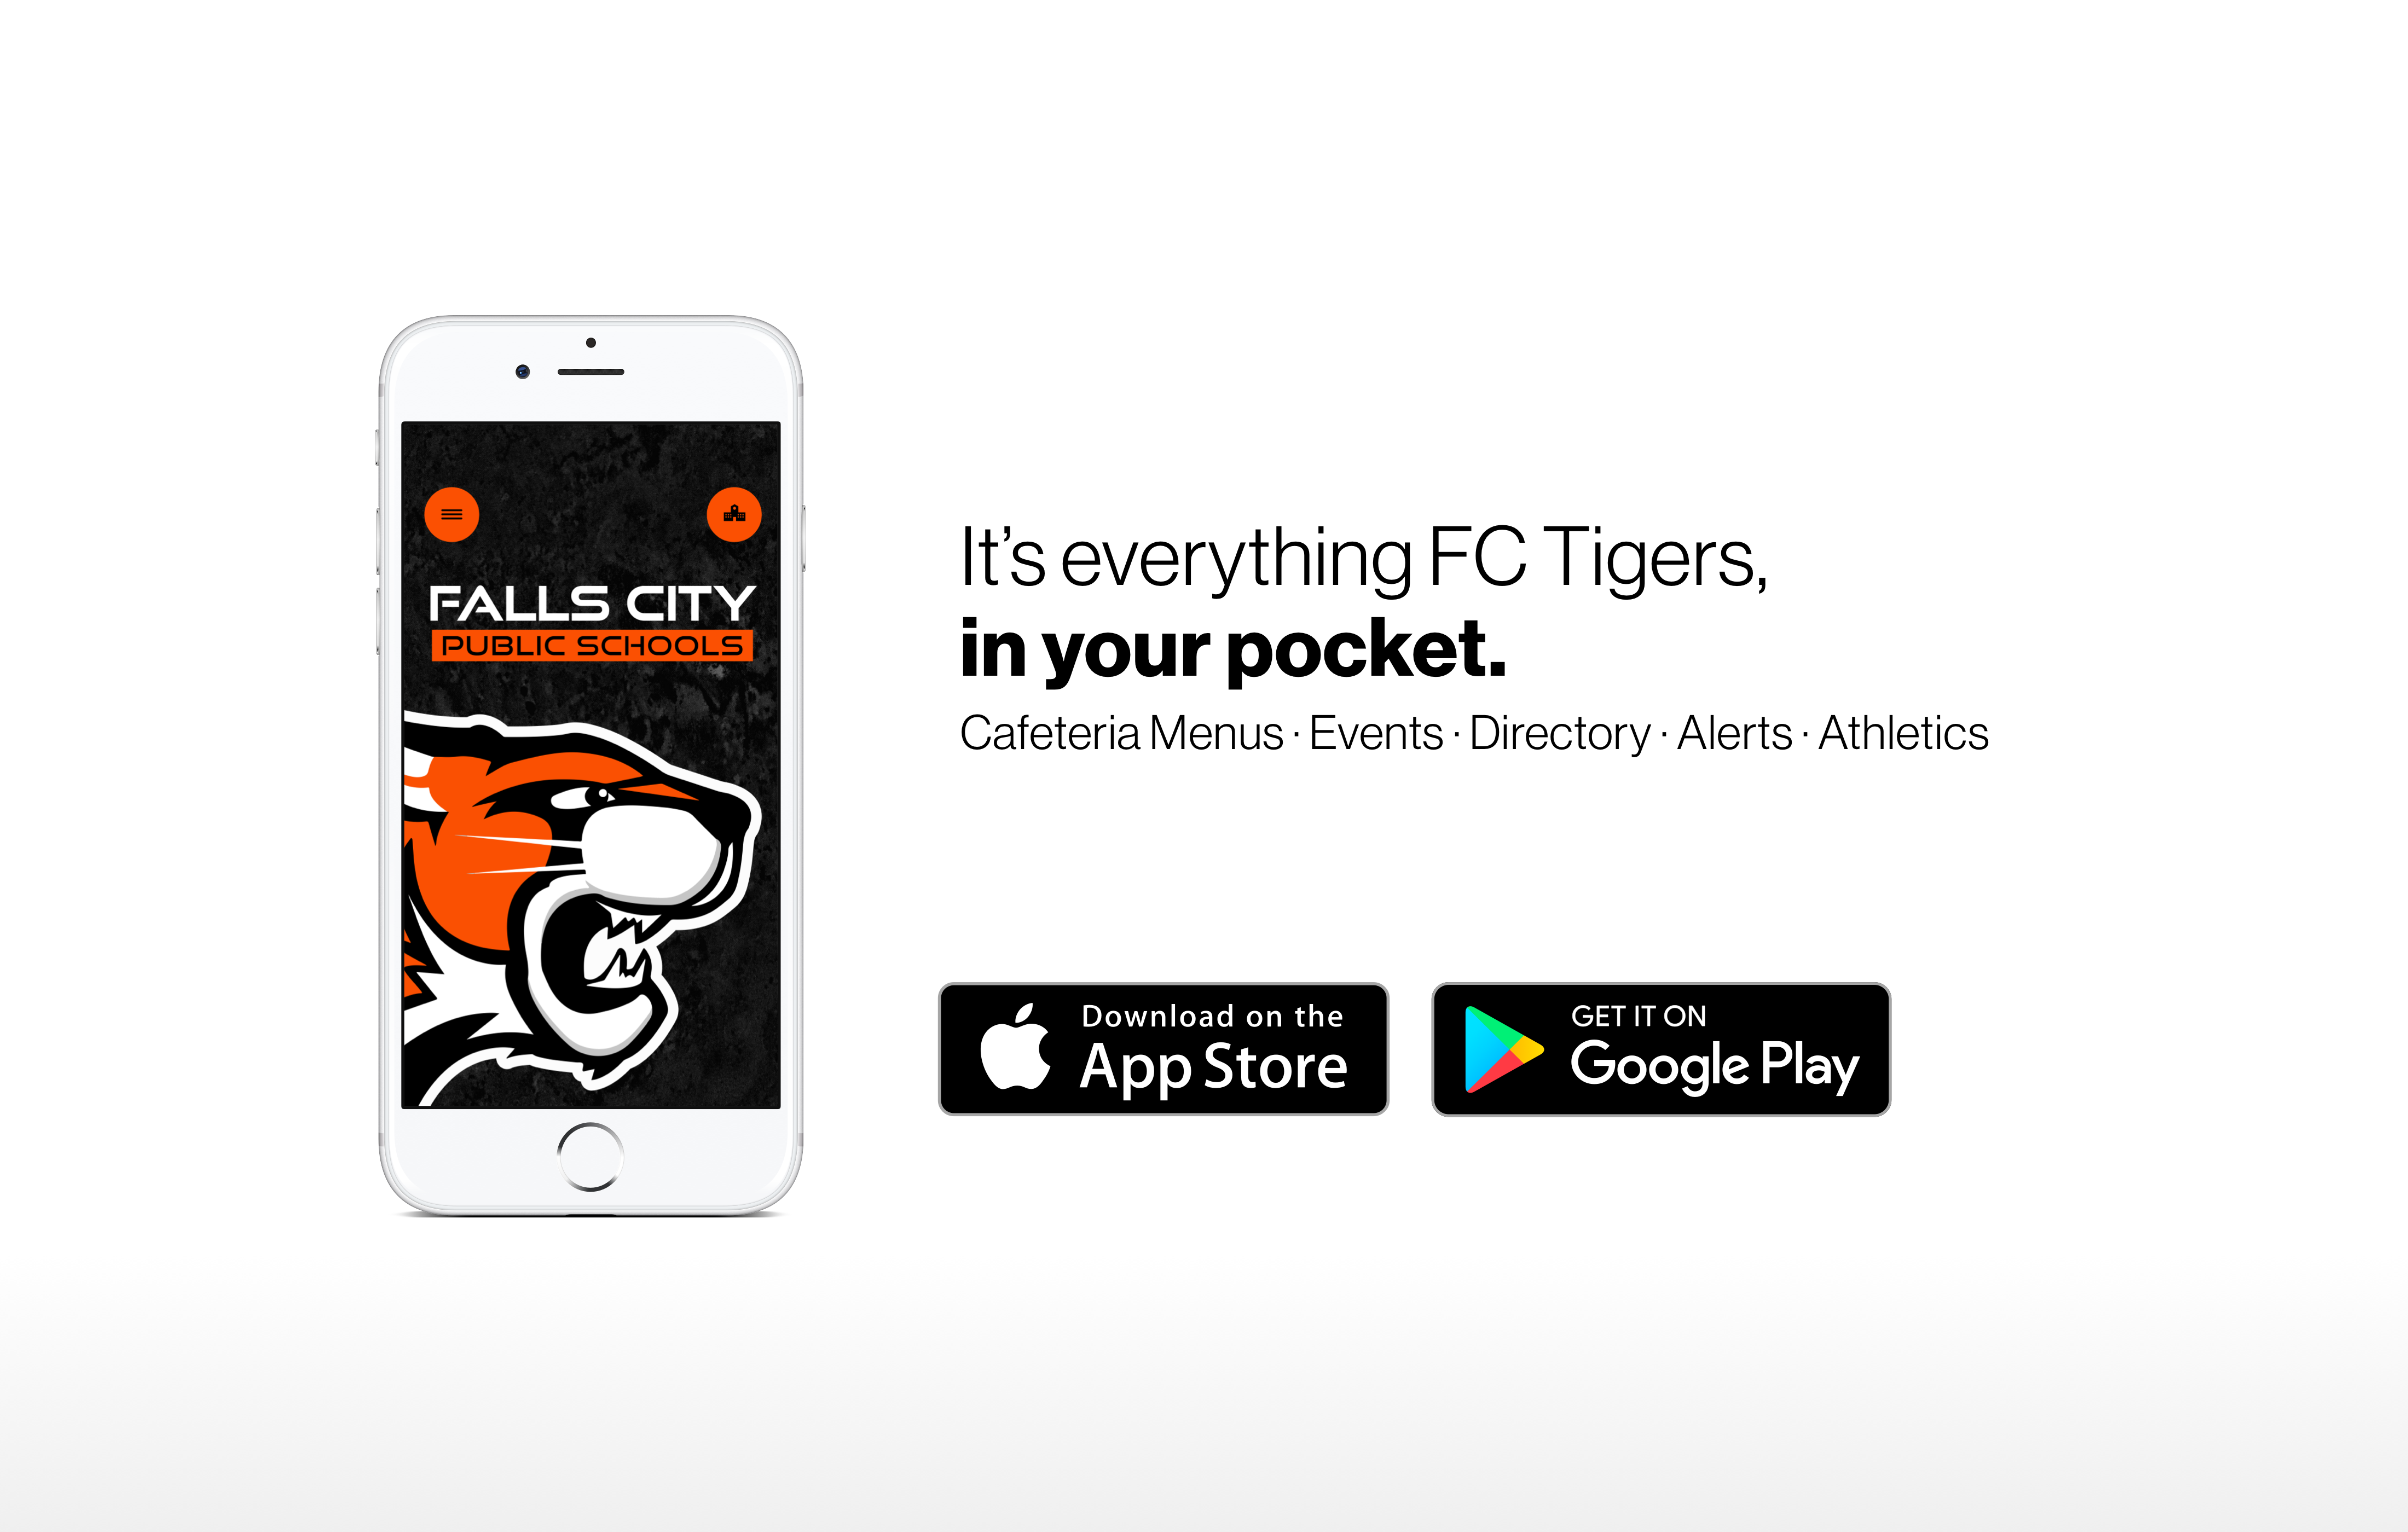 It's everything FC Tigers in your pocket